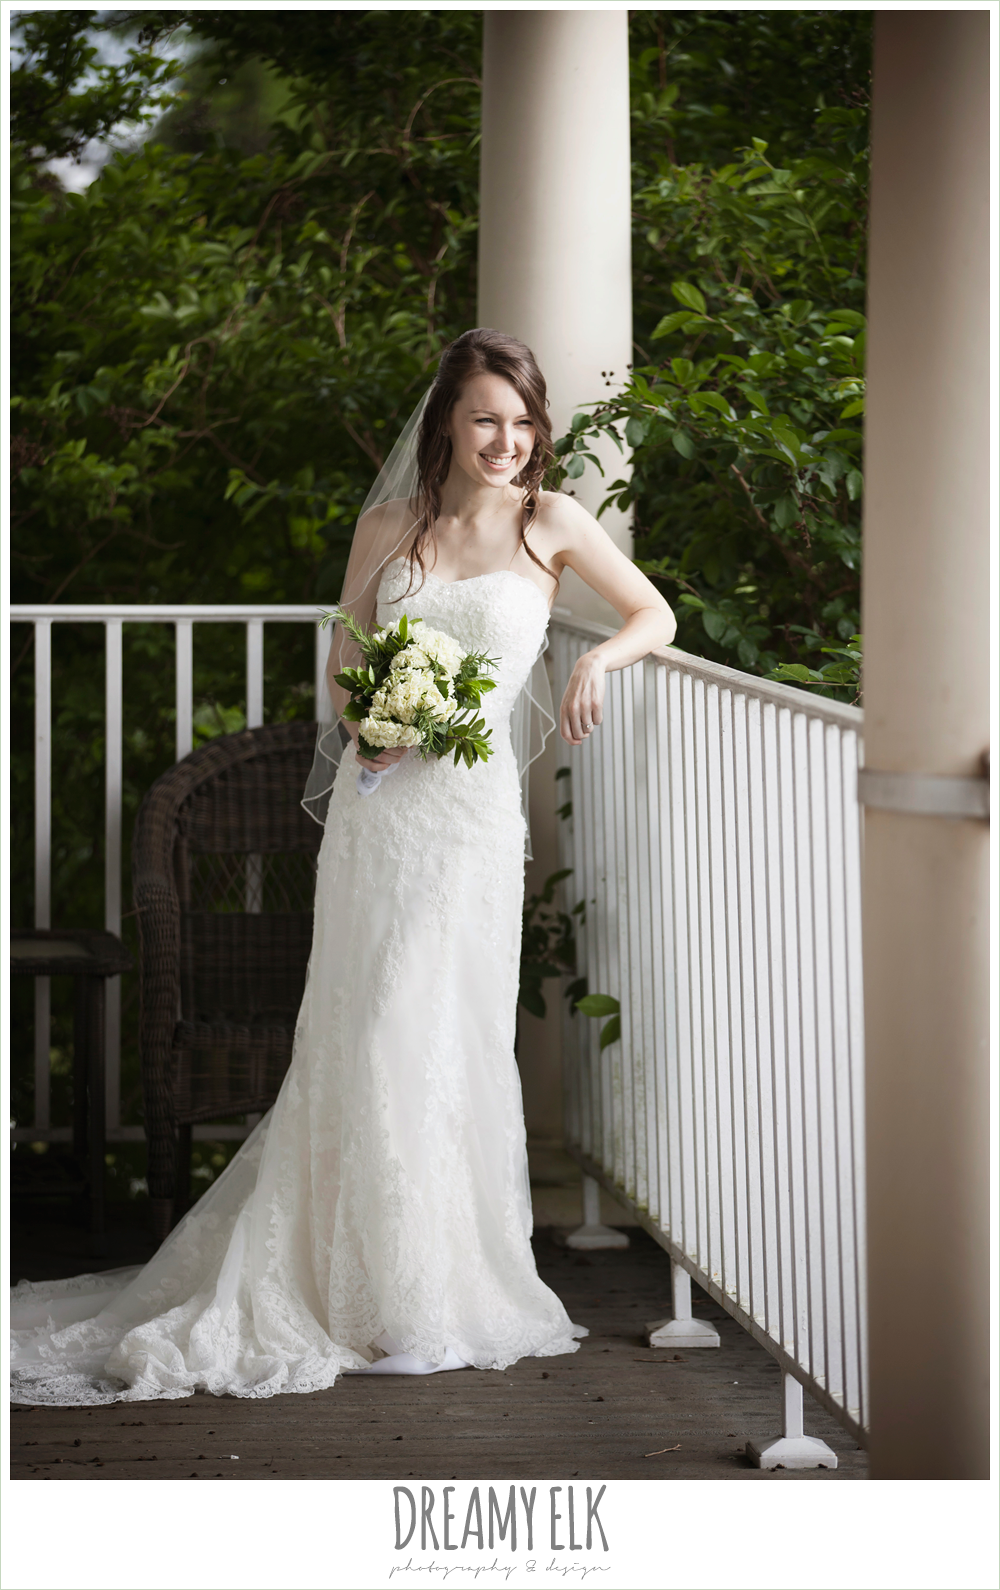 lace sweetheart strapless wedding dress, outdoor rainy day bridal photo on a porch {dreamy elk photography and design}